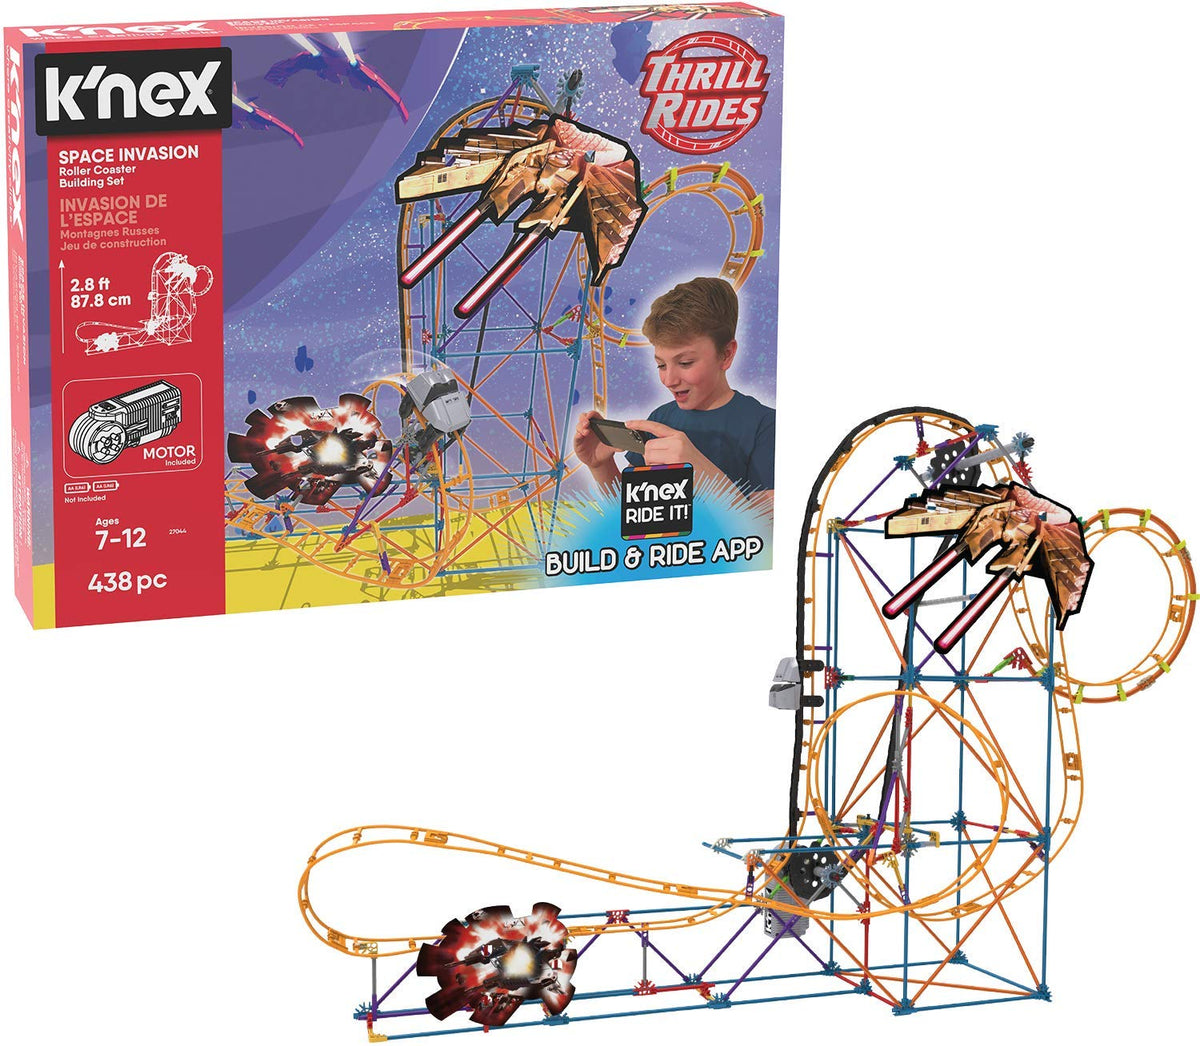 KNEX  Thrill Rides, Space Invasion Roller Coaster Building Set